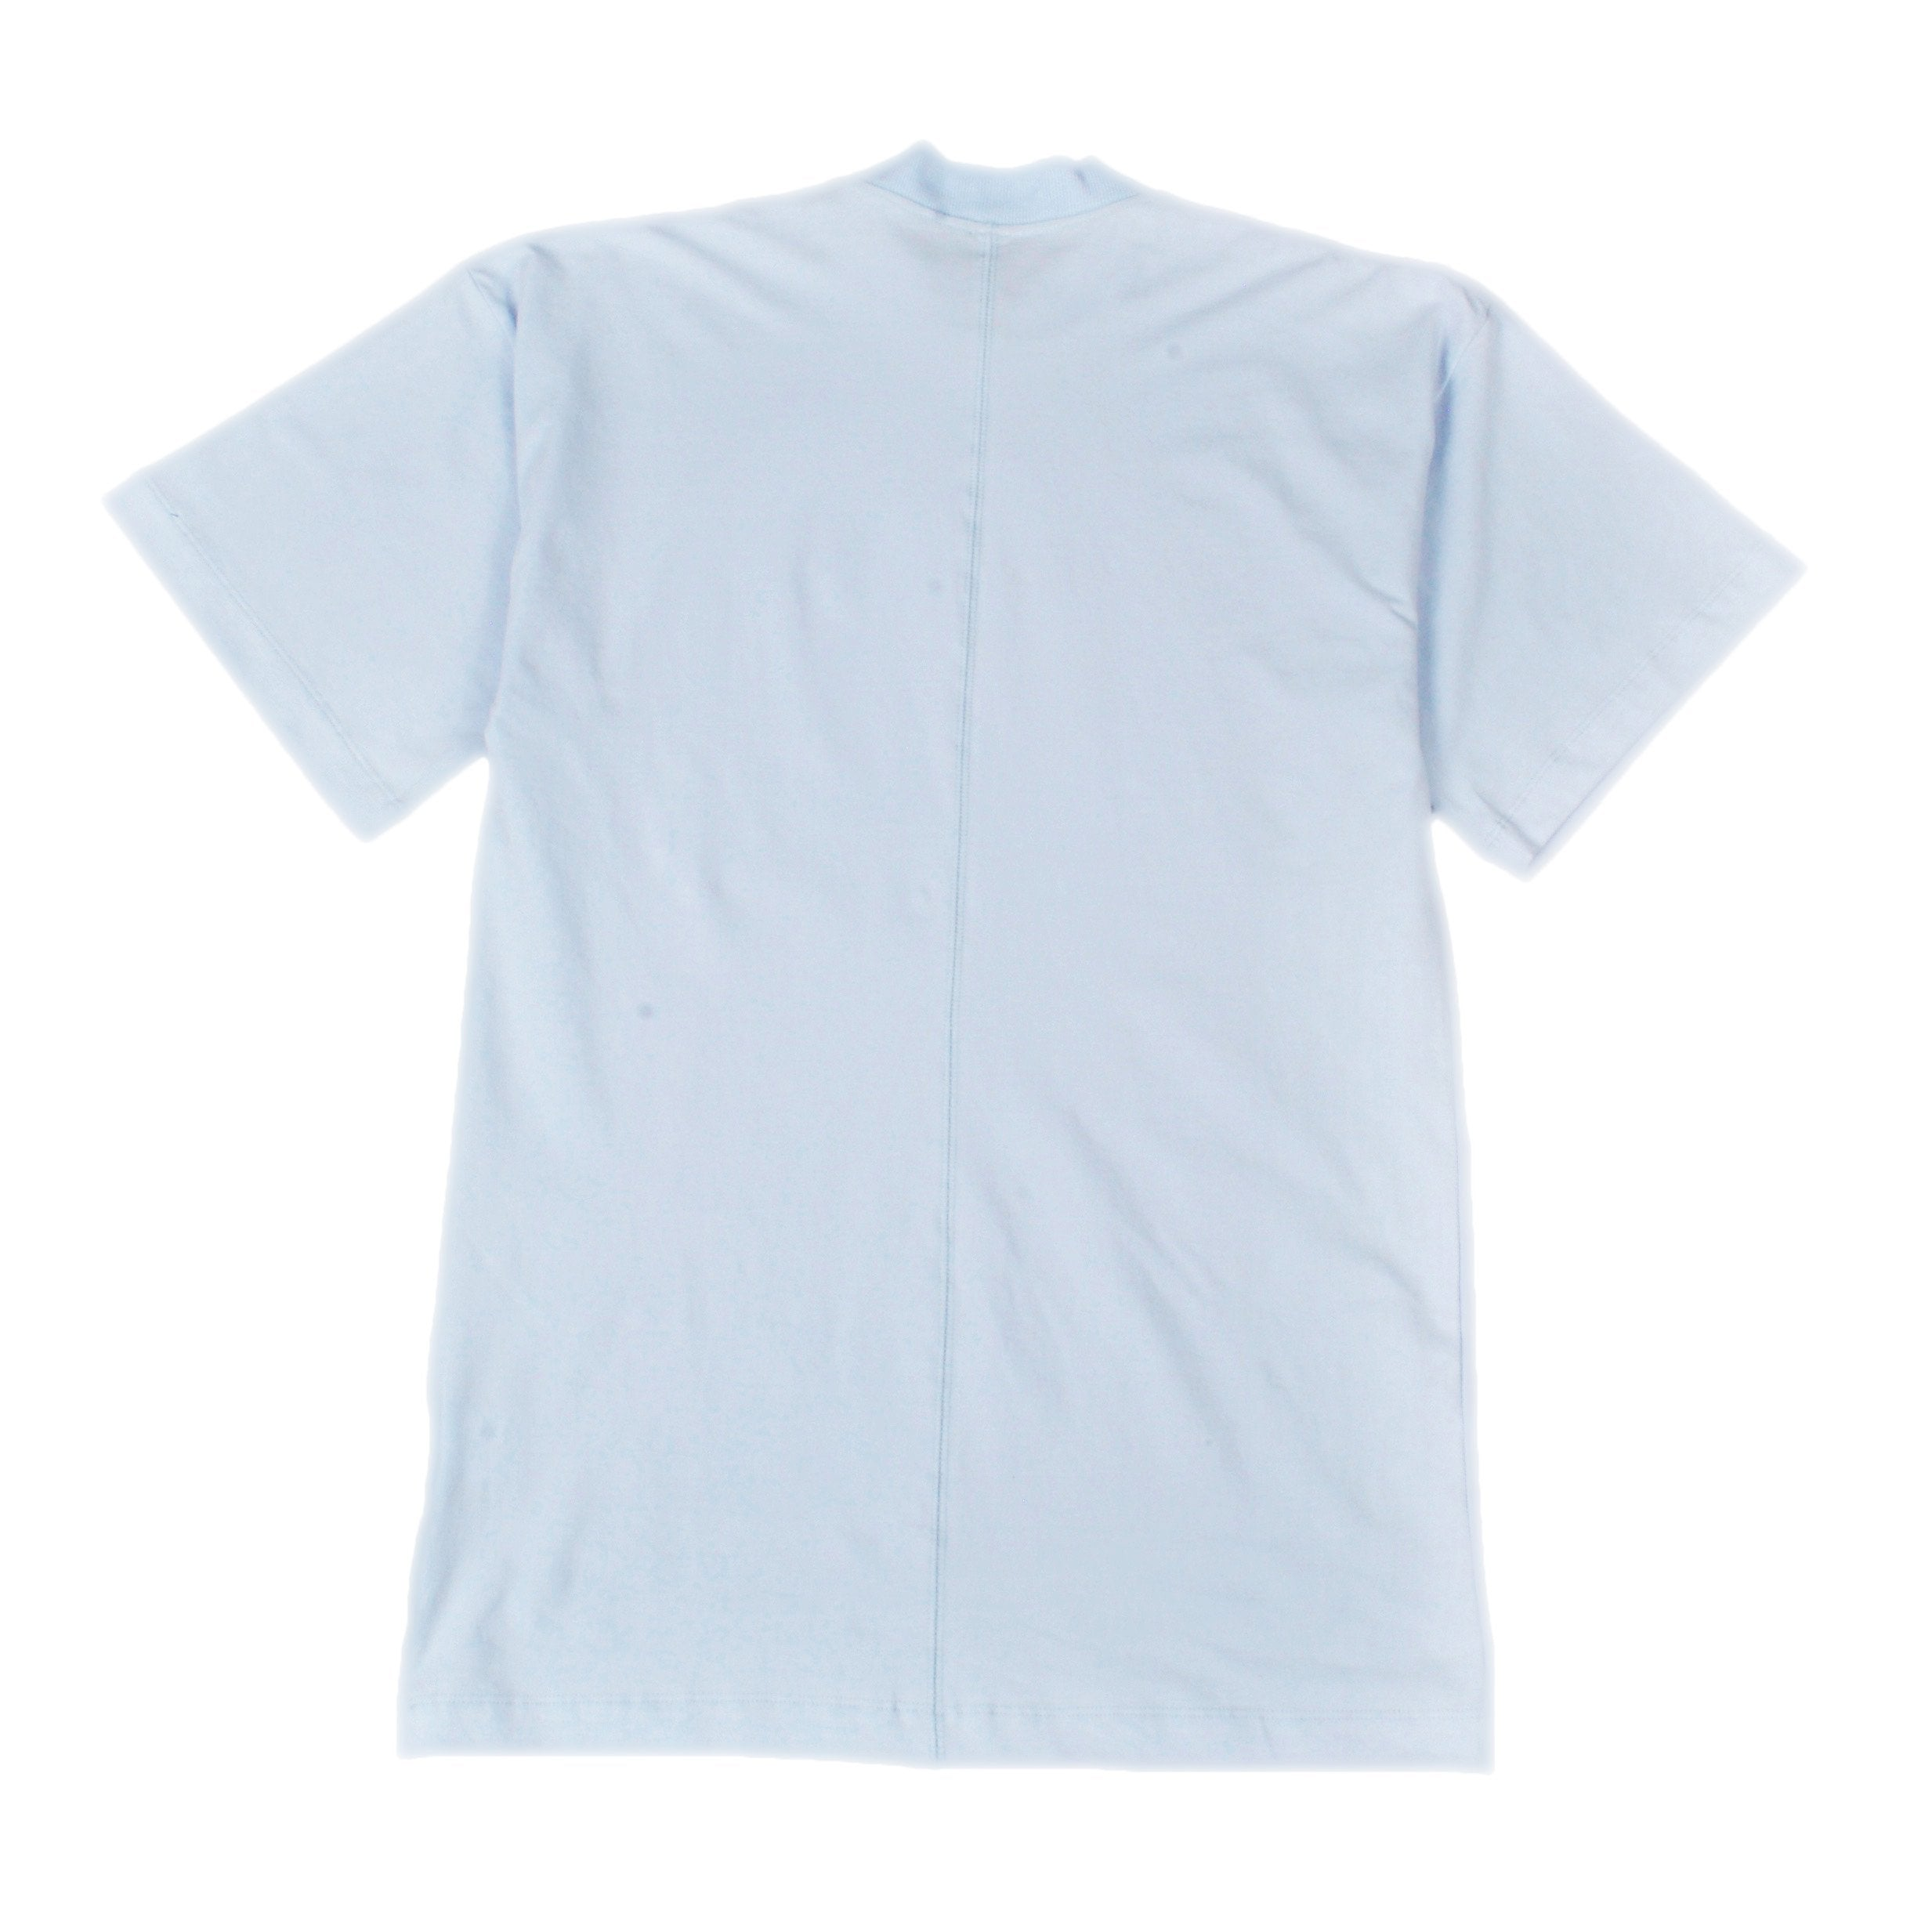 """CHE TYPE BEAT"" T-SHIRT (BABY BLUE) - The Incorporated"